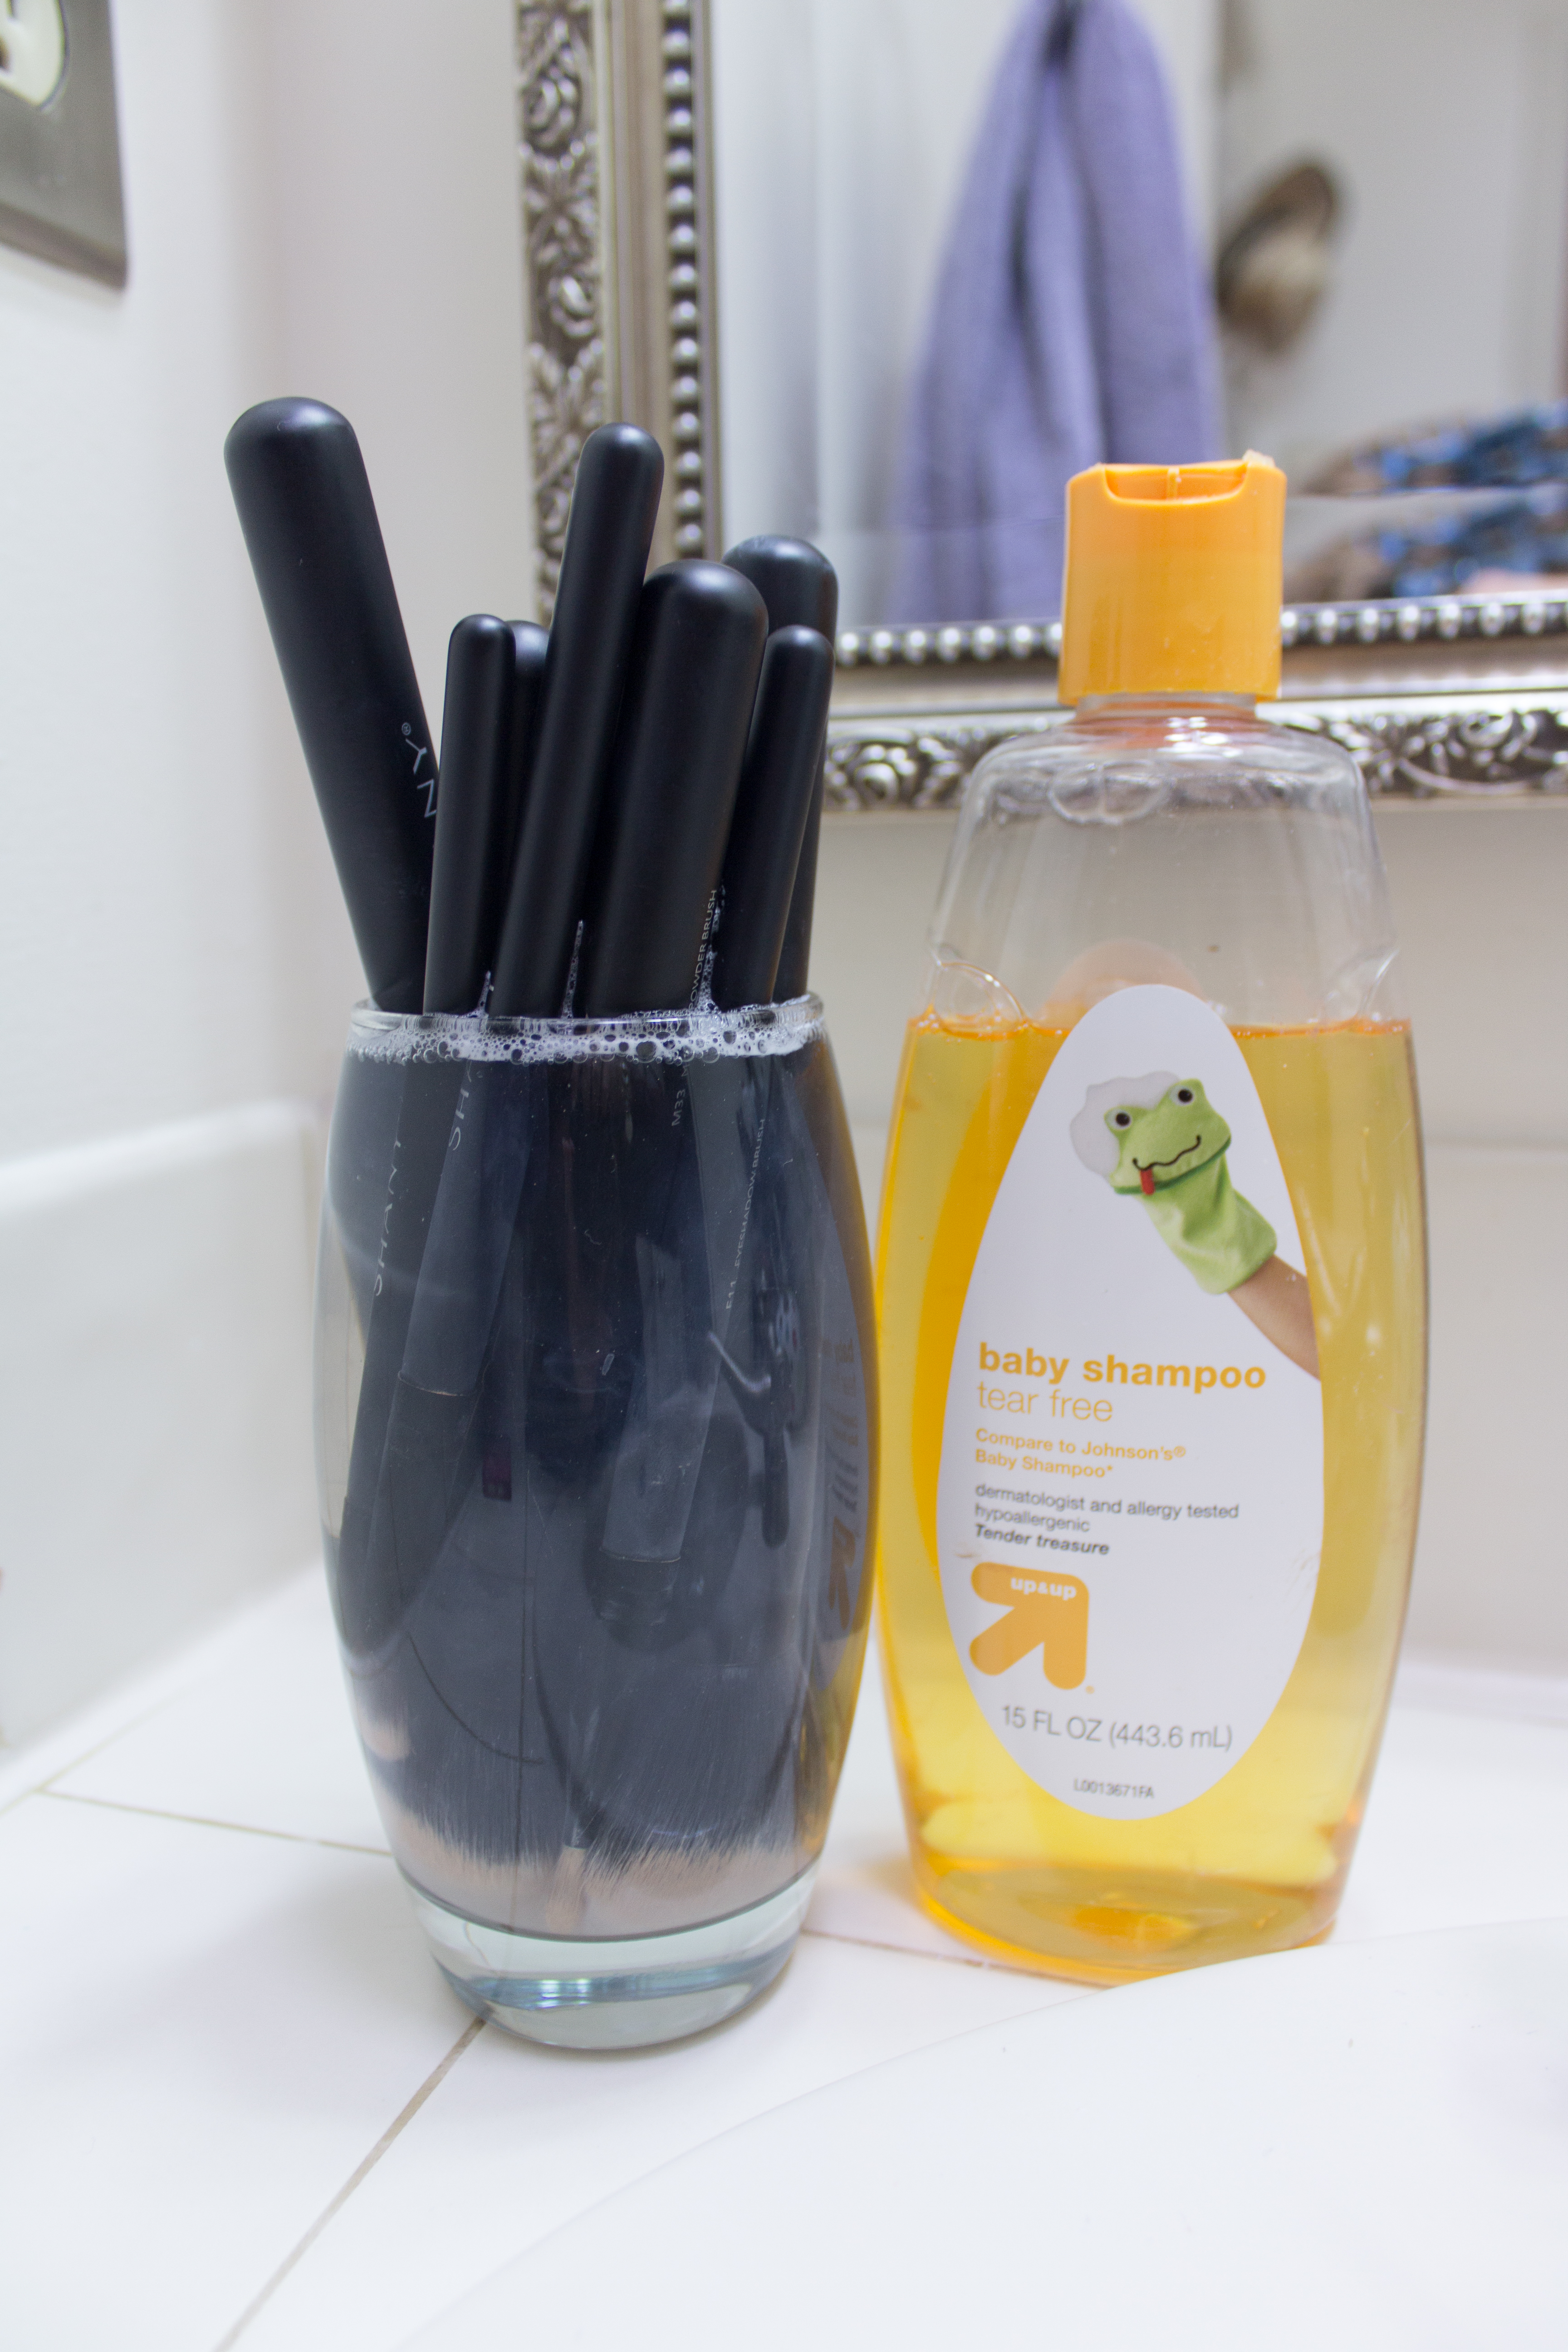 How To Wash Your Makeup Brushes Safely With Baby Shampoo 6